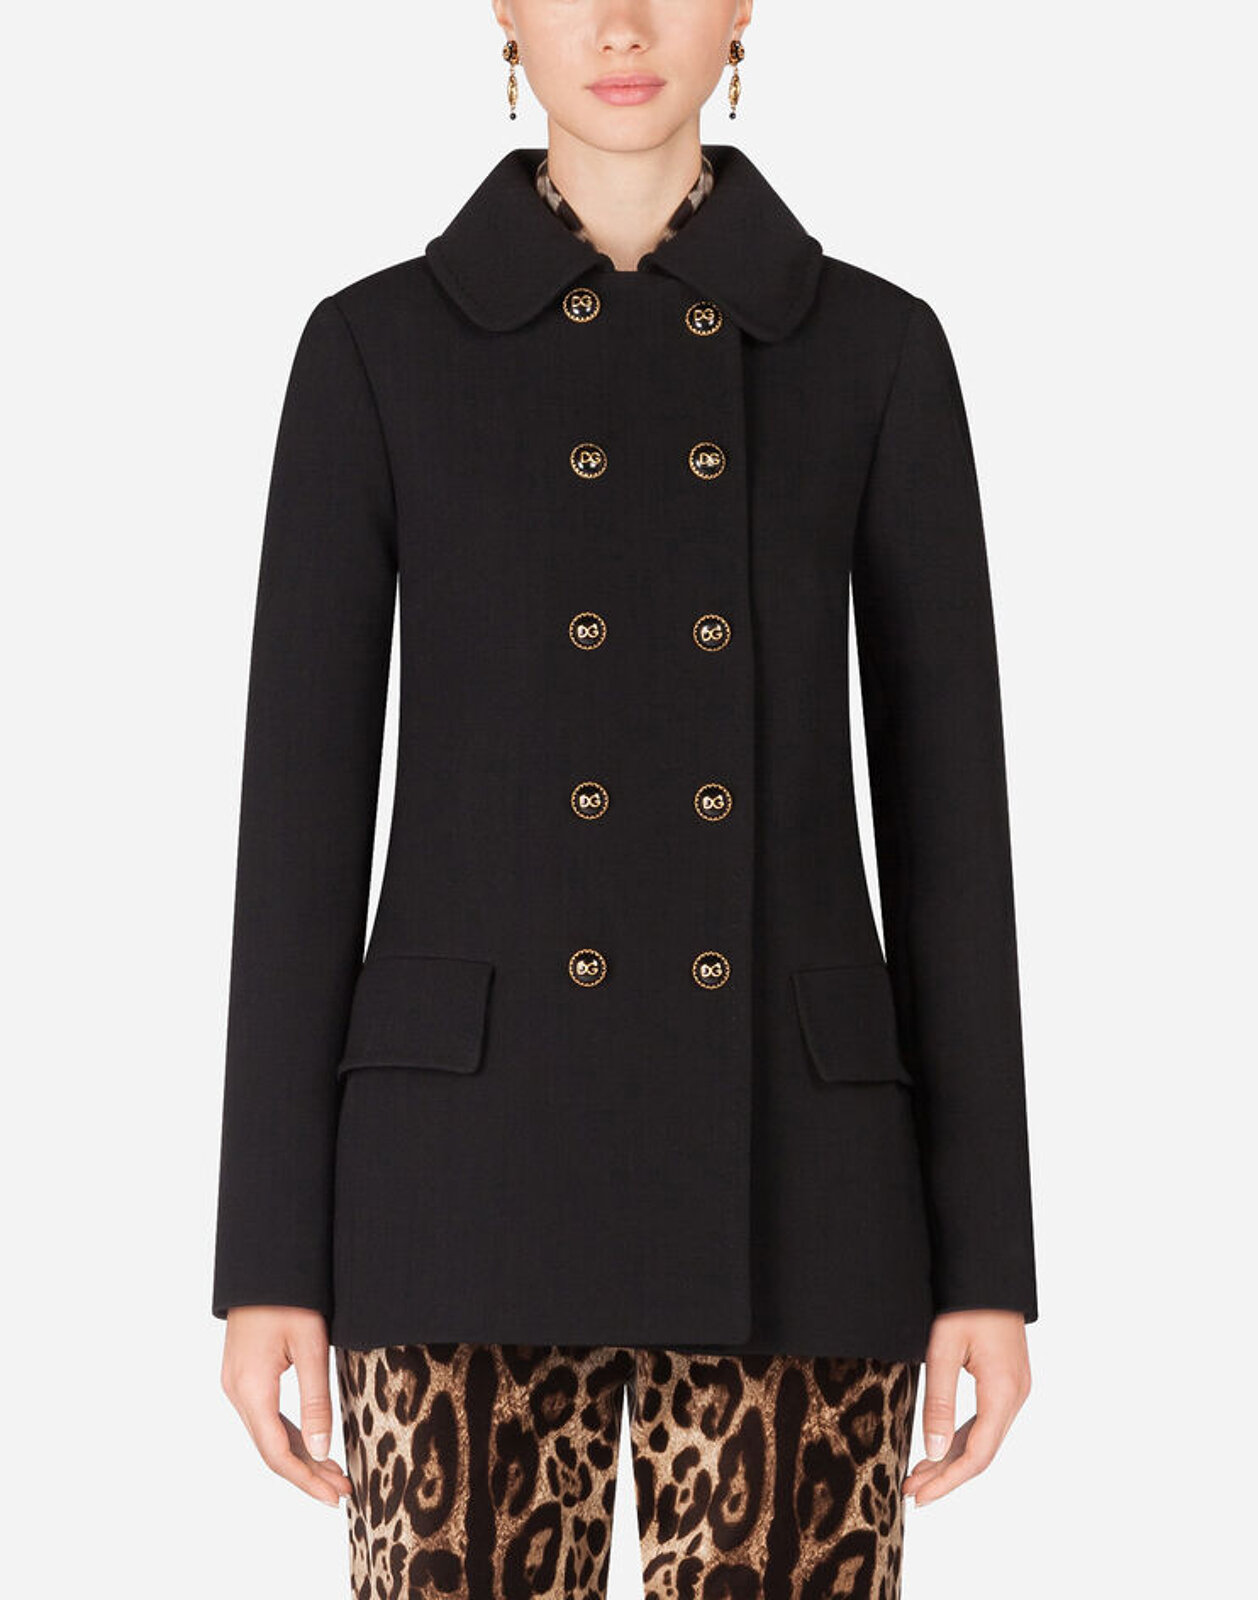 Natté Peacoat With Decorative Buttons - Dolce & Gabbana